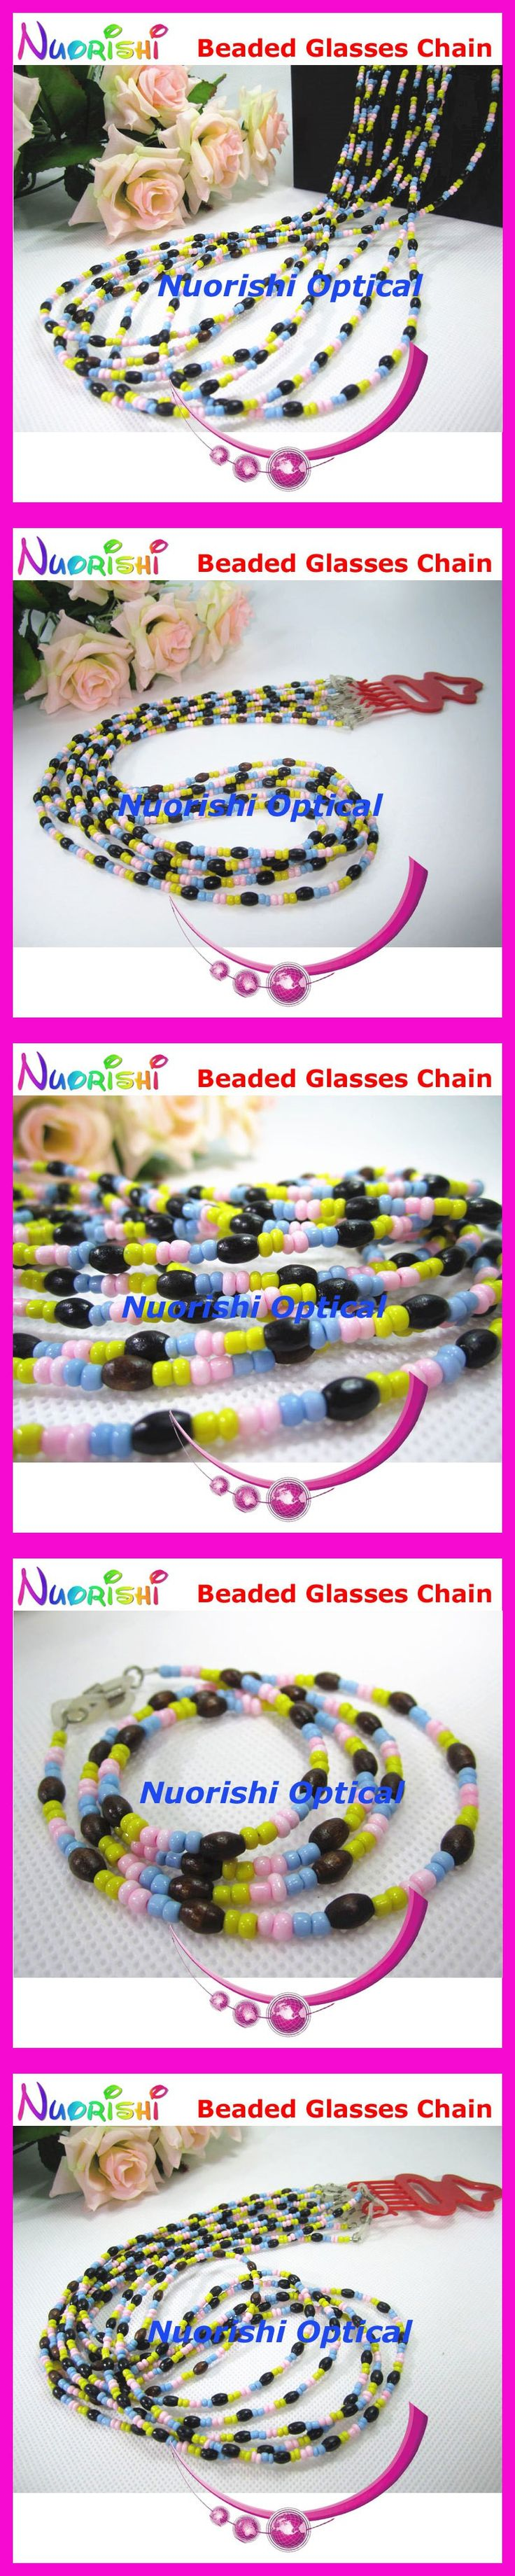 6pcs Nice Beaded Steel Wire Rope Eyeglasses Sunglasses Eyewear Spectacle Chain Cords Lanyard free shipping L843 $9.08